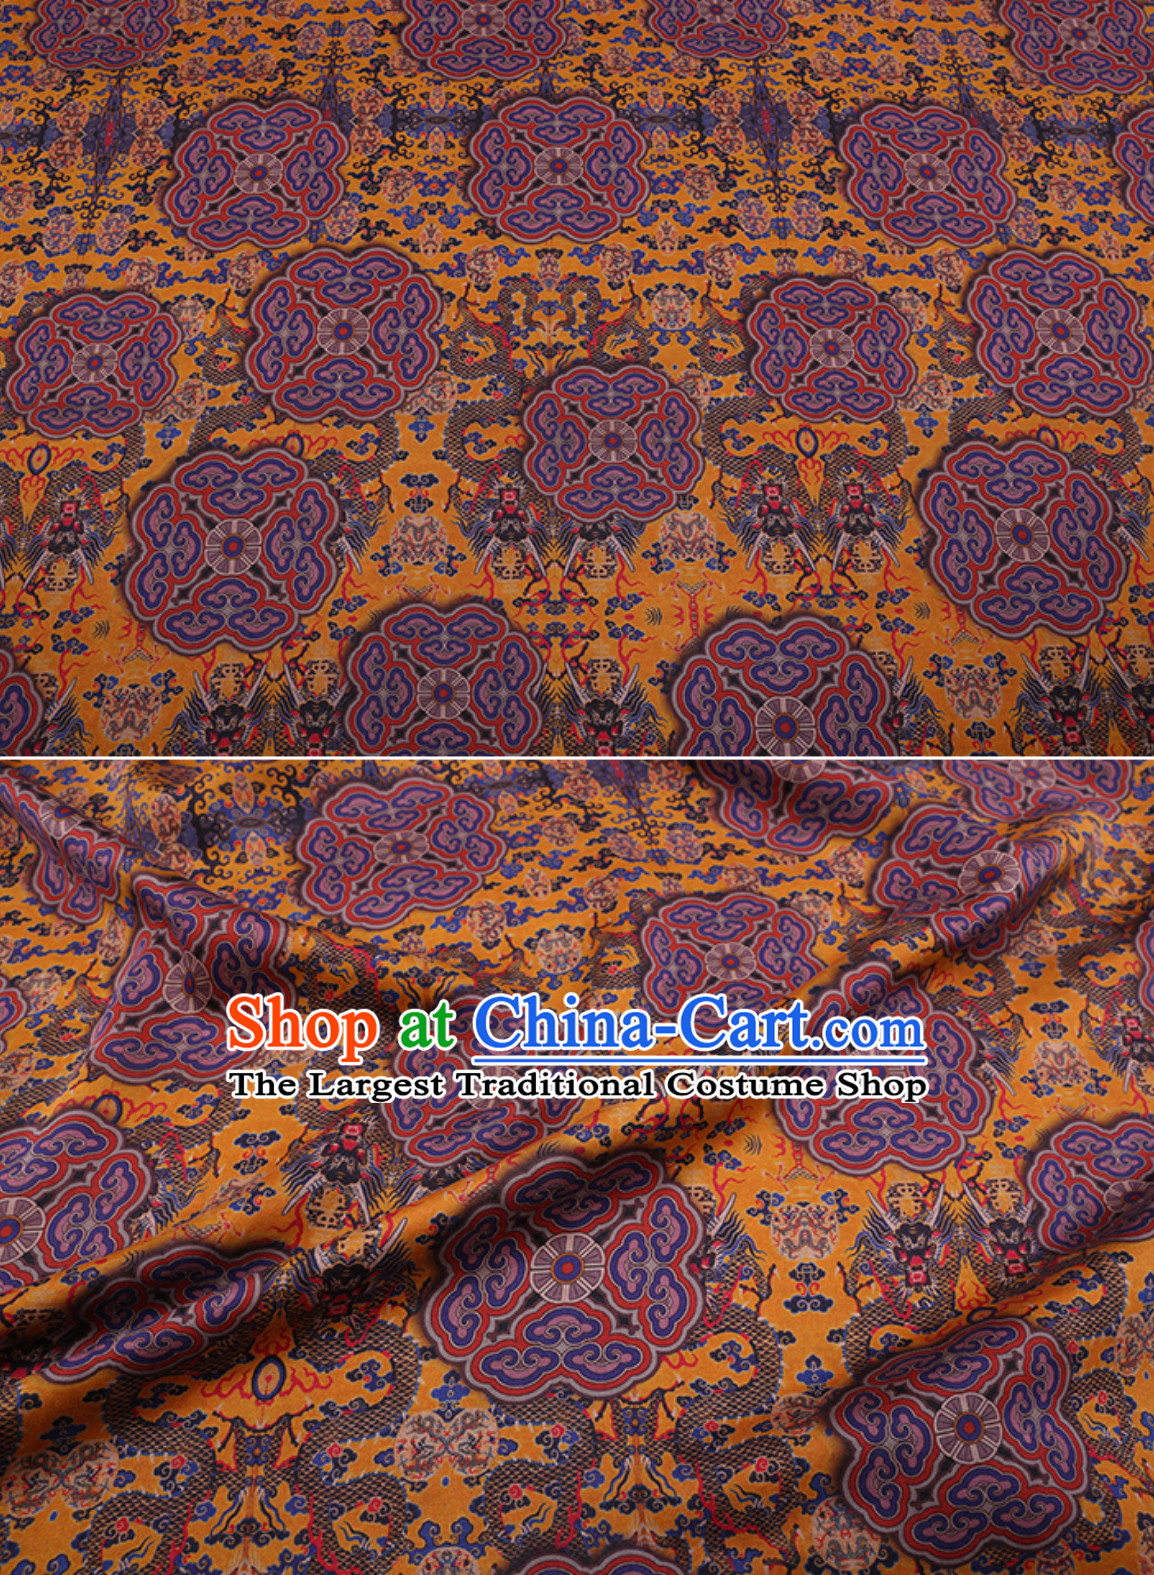 Palace Classic Royal 100% Pure Silk Round Dragon Pattern Fabric Chinese Traditional Silk Fabrics